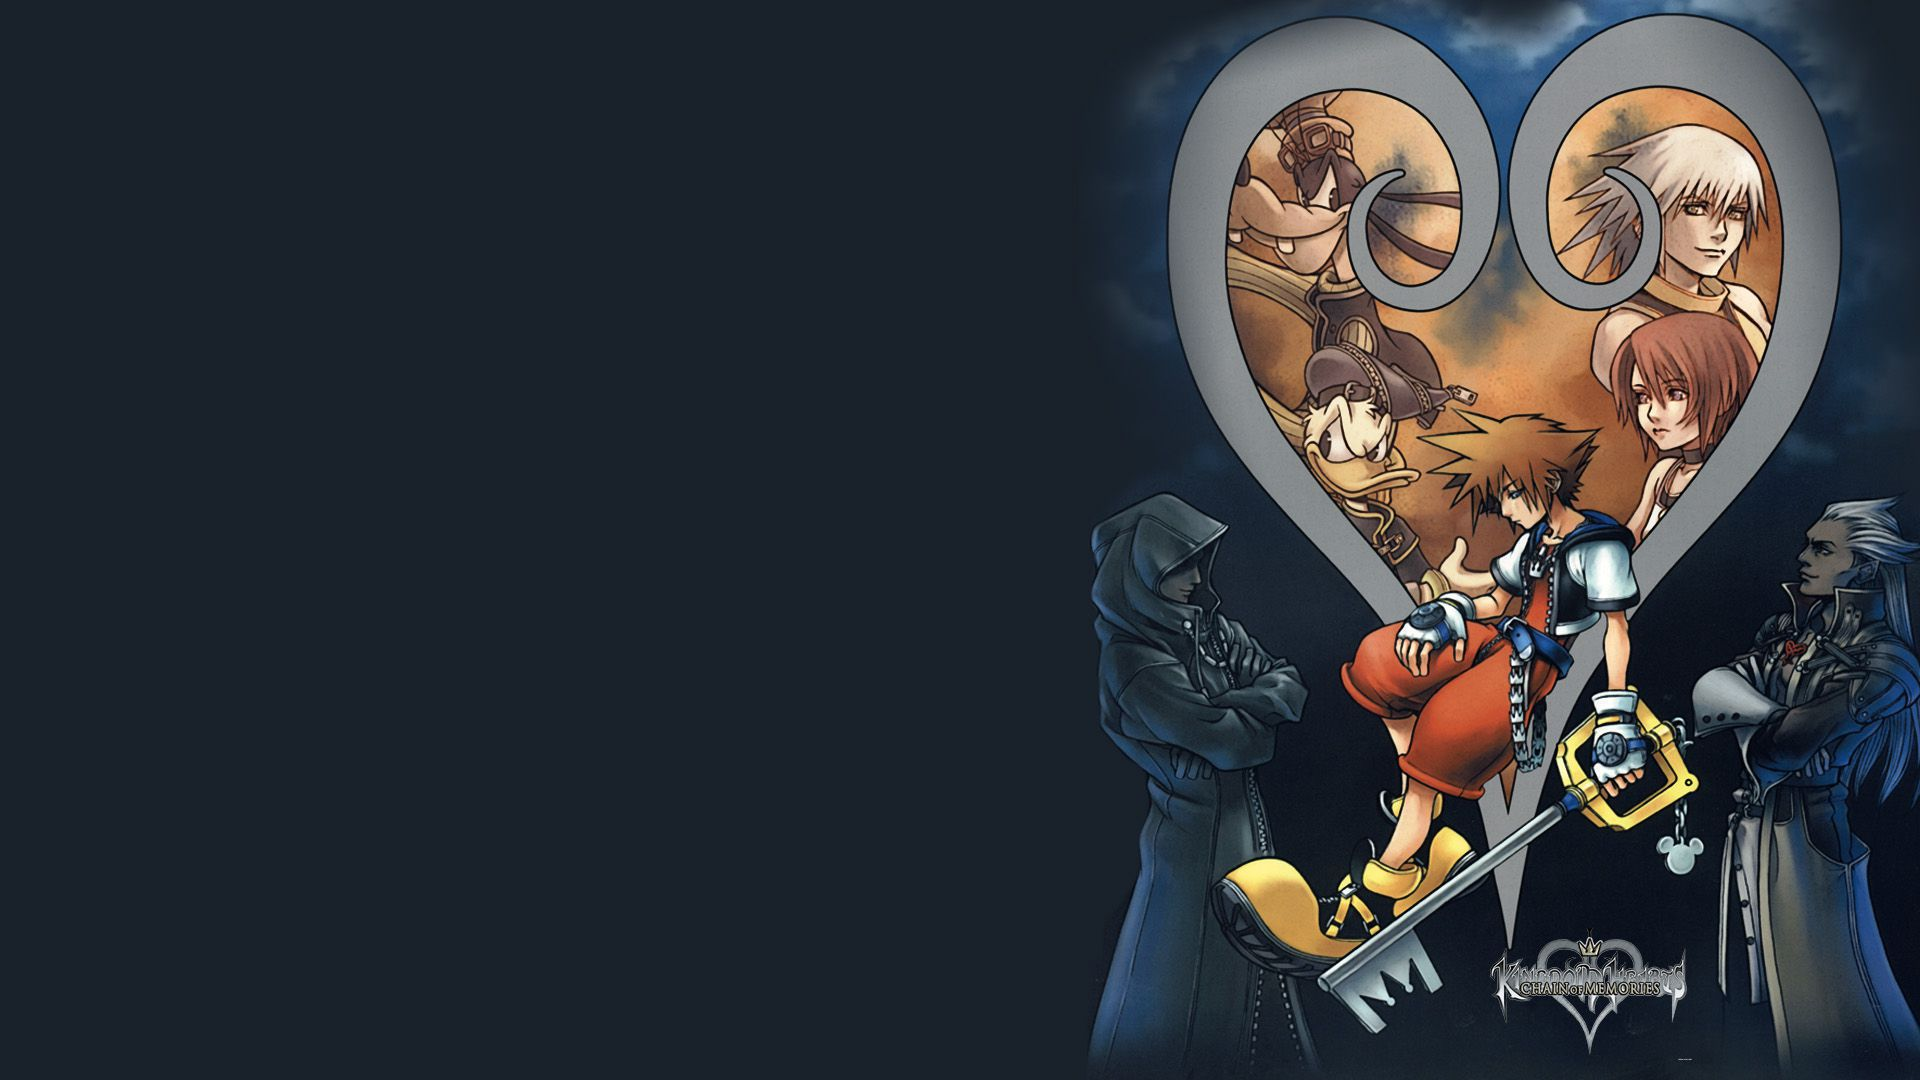 Kingdom Hearts 3 Pictures